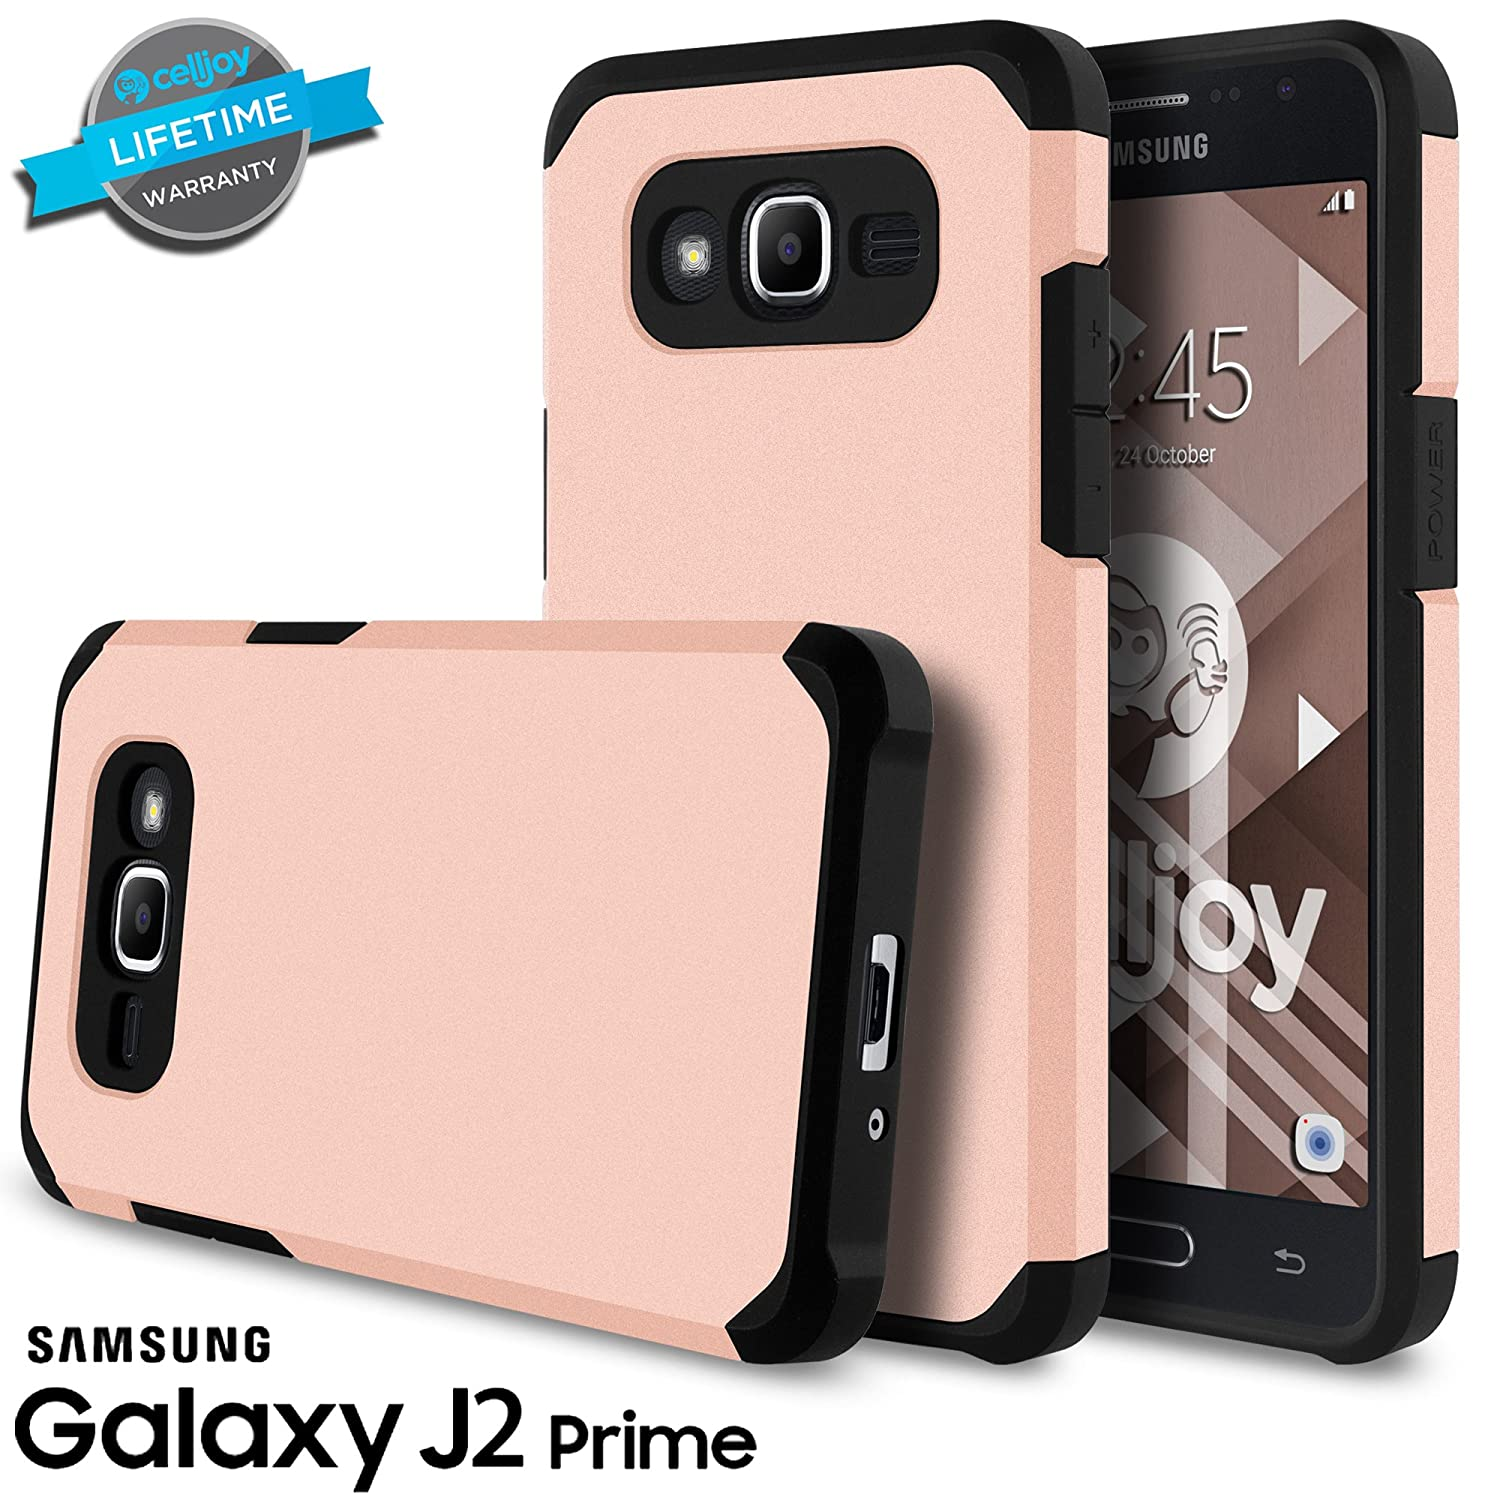 Galaxy J2 Prime Case Grand Plus My User Flip Cover Samsung Gold Celljoy Liquid Armor Slim Fit Dual Layer Series Tpu Protective Hybrid Shockproof